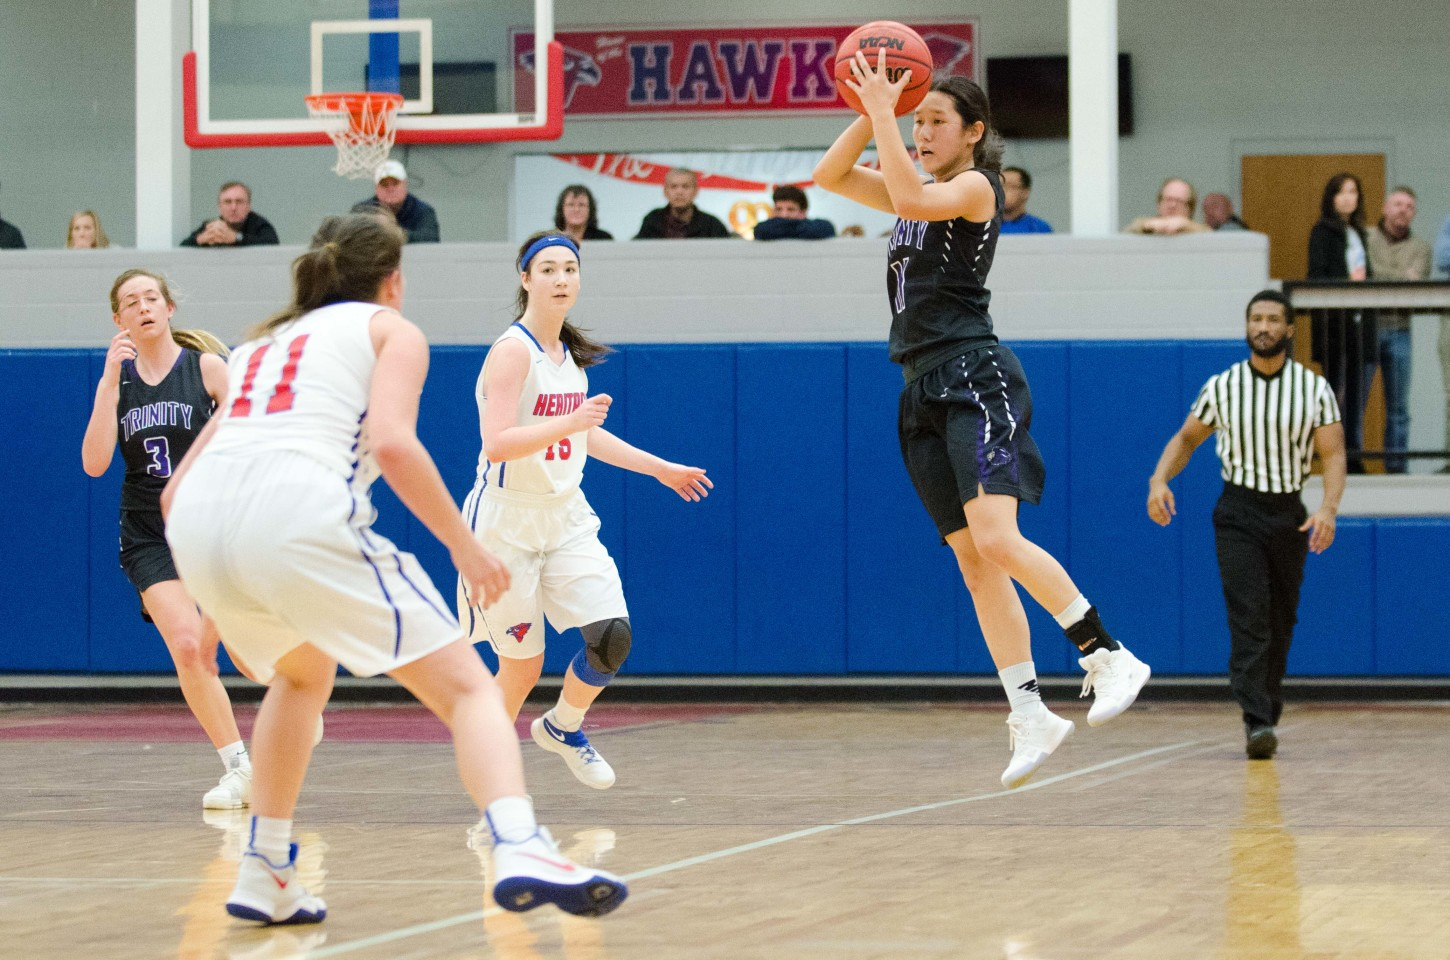 Trinity's Anna Montgomery grabs a pass out of the air while looking upcourt for a teammate.